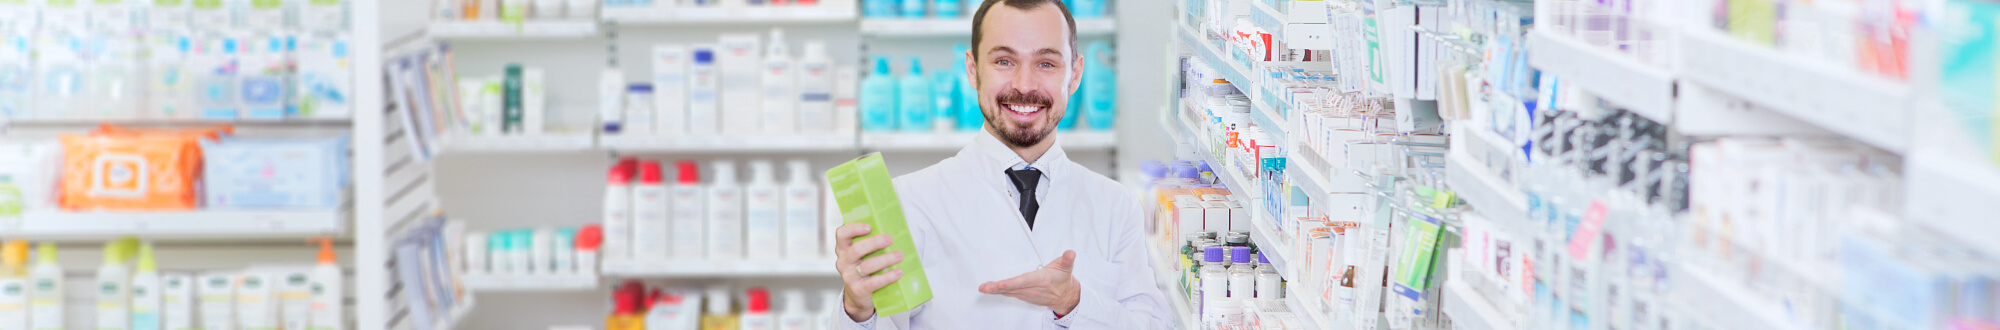 pharmacist smiling and holding a product